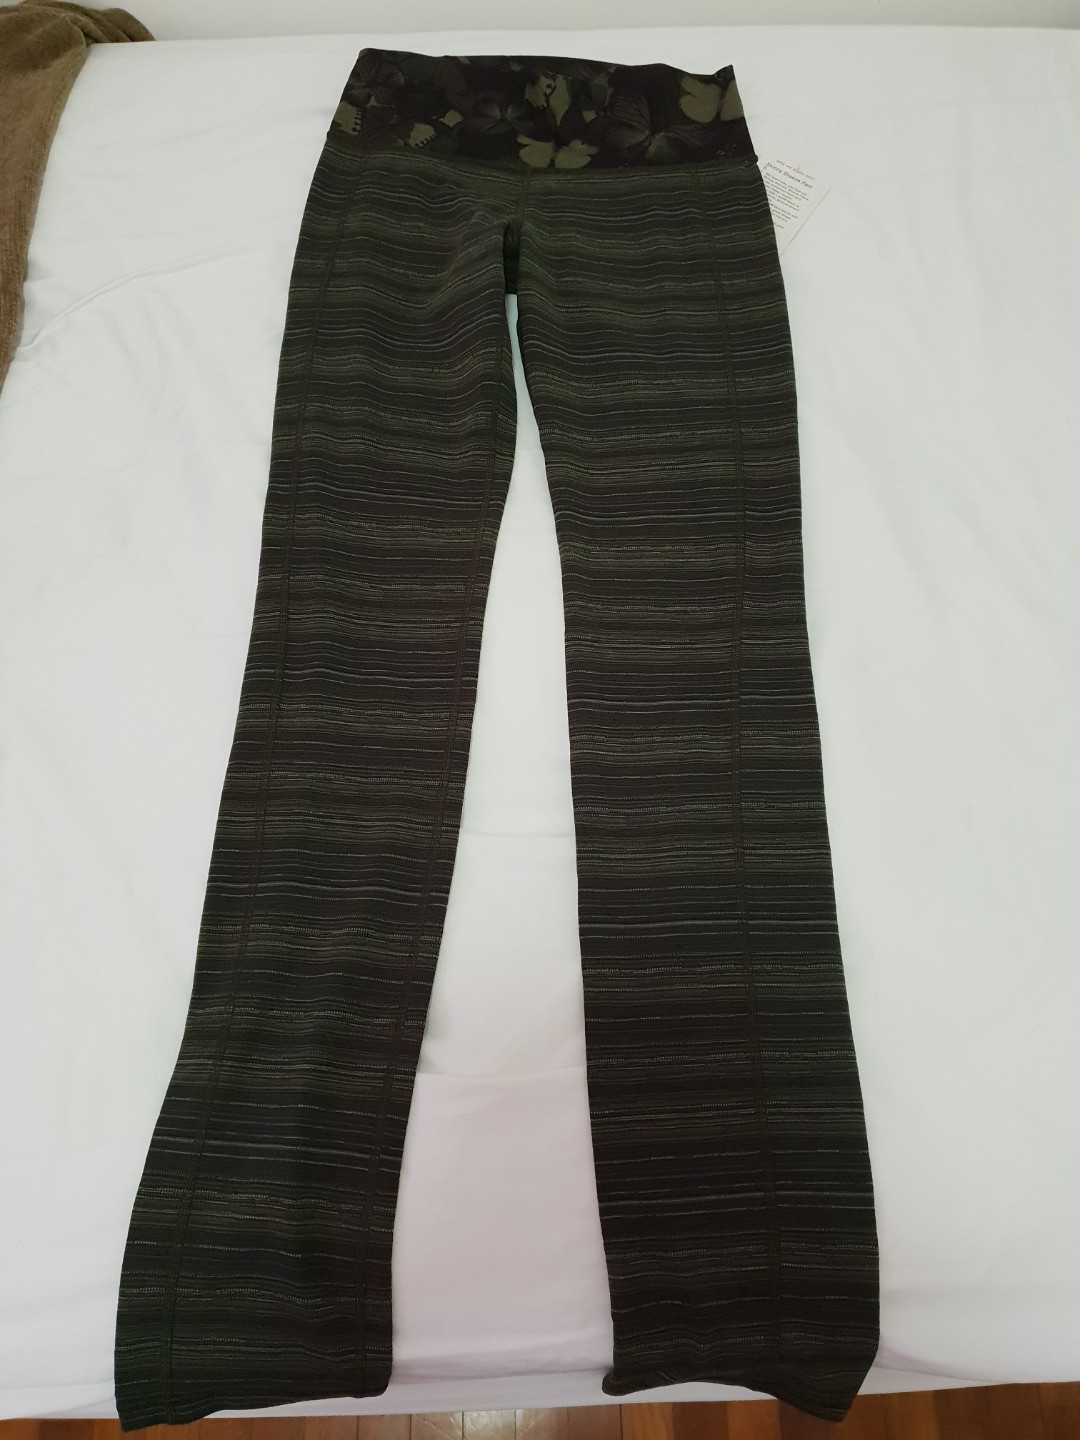 235c9f5f94 BNWT Lululemon athletica skinny groove pant ii, Women's Fashion ...